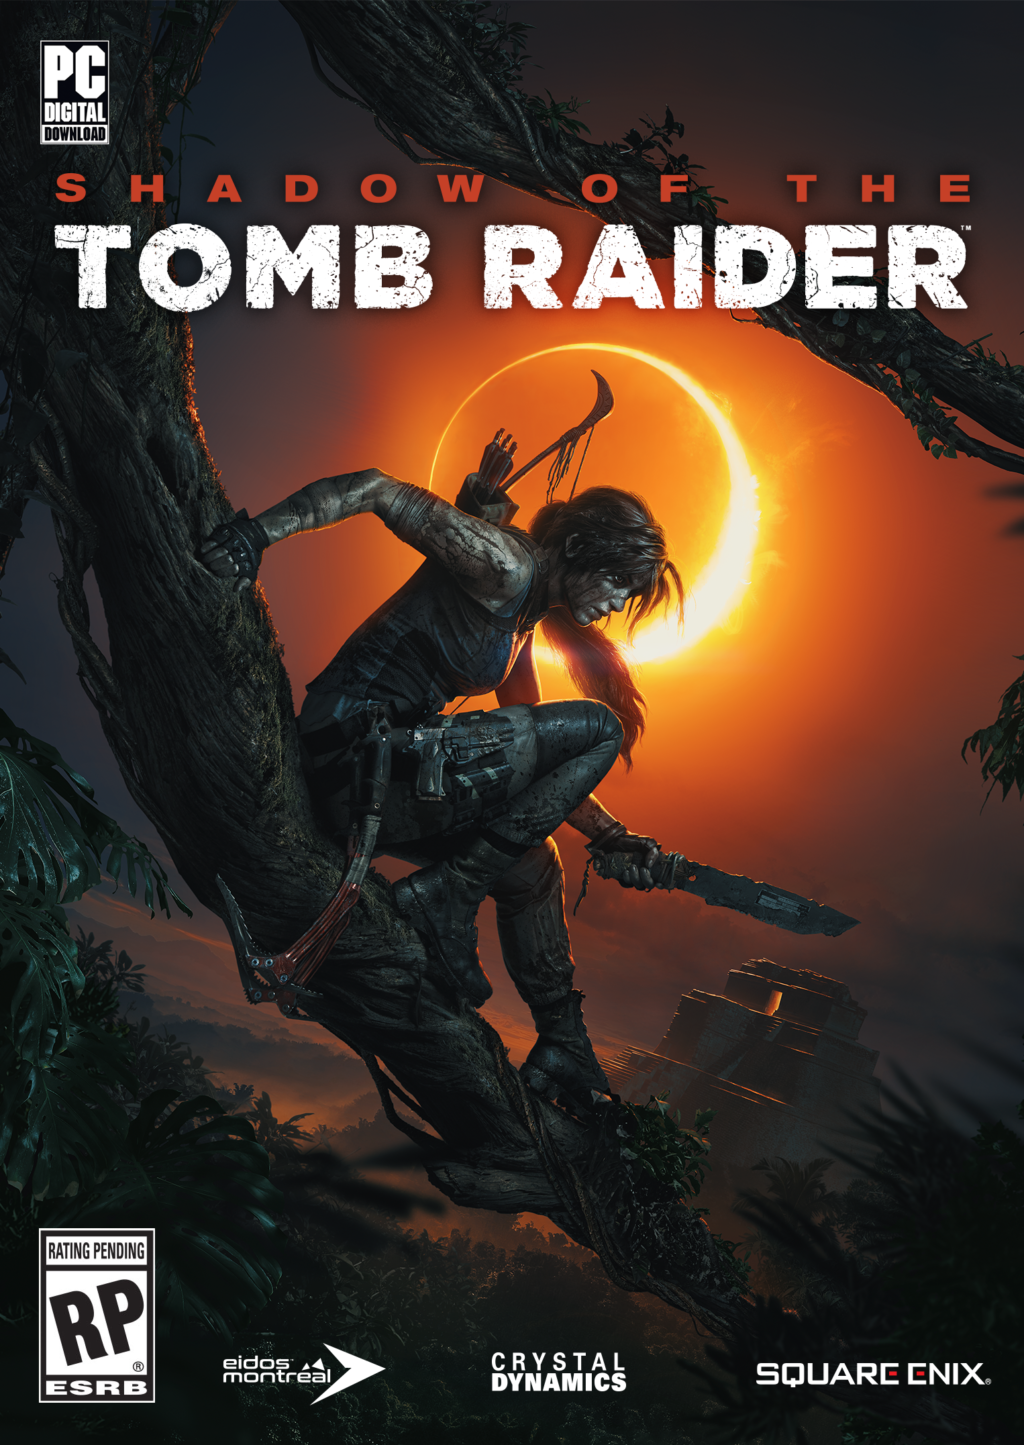 shadow of the tomb raider box 1024x1445 - SHADOW OF THE TOMB RAIDER Review - Sophomore Slump For Veteran Franchise